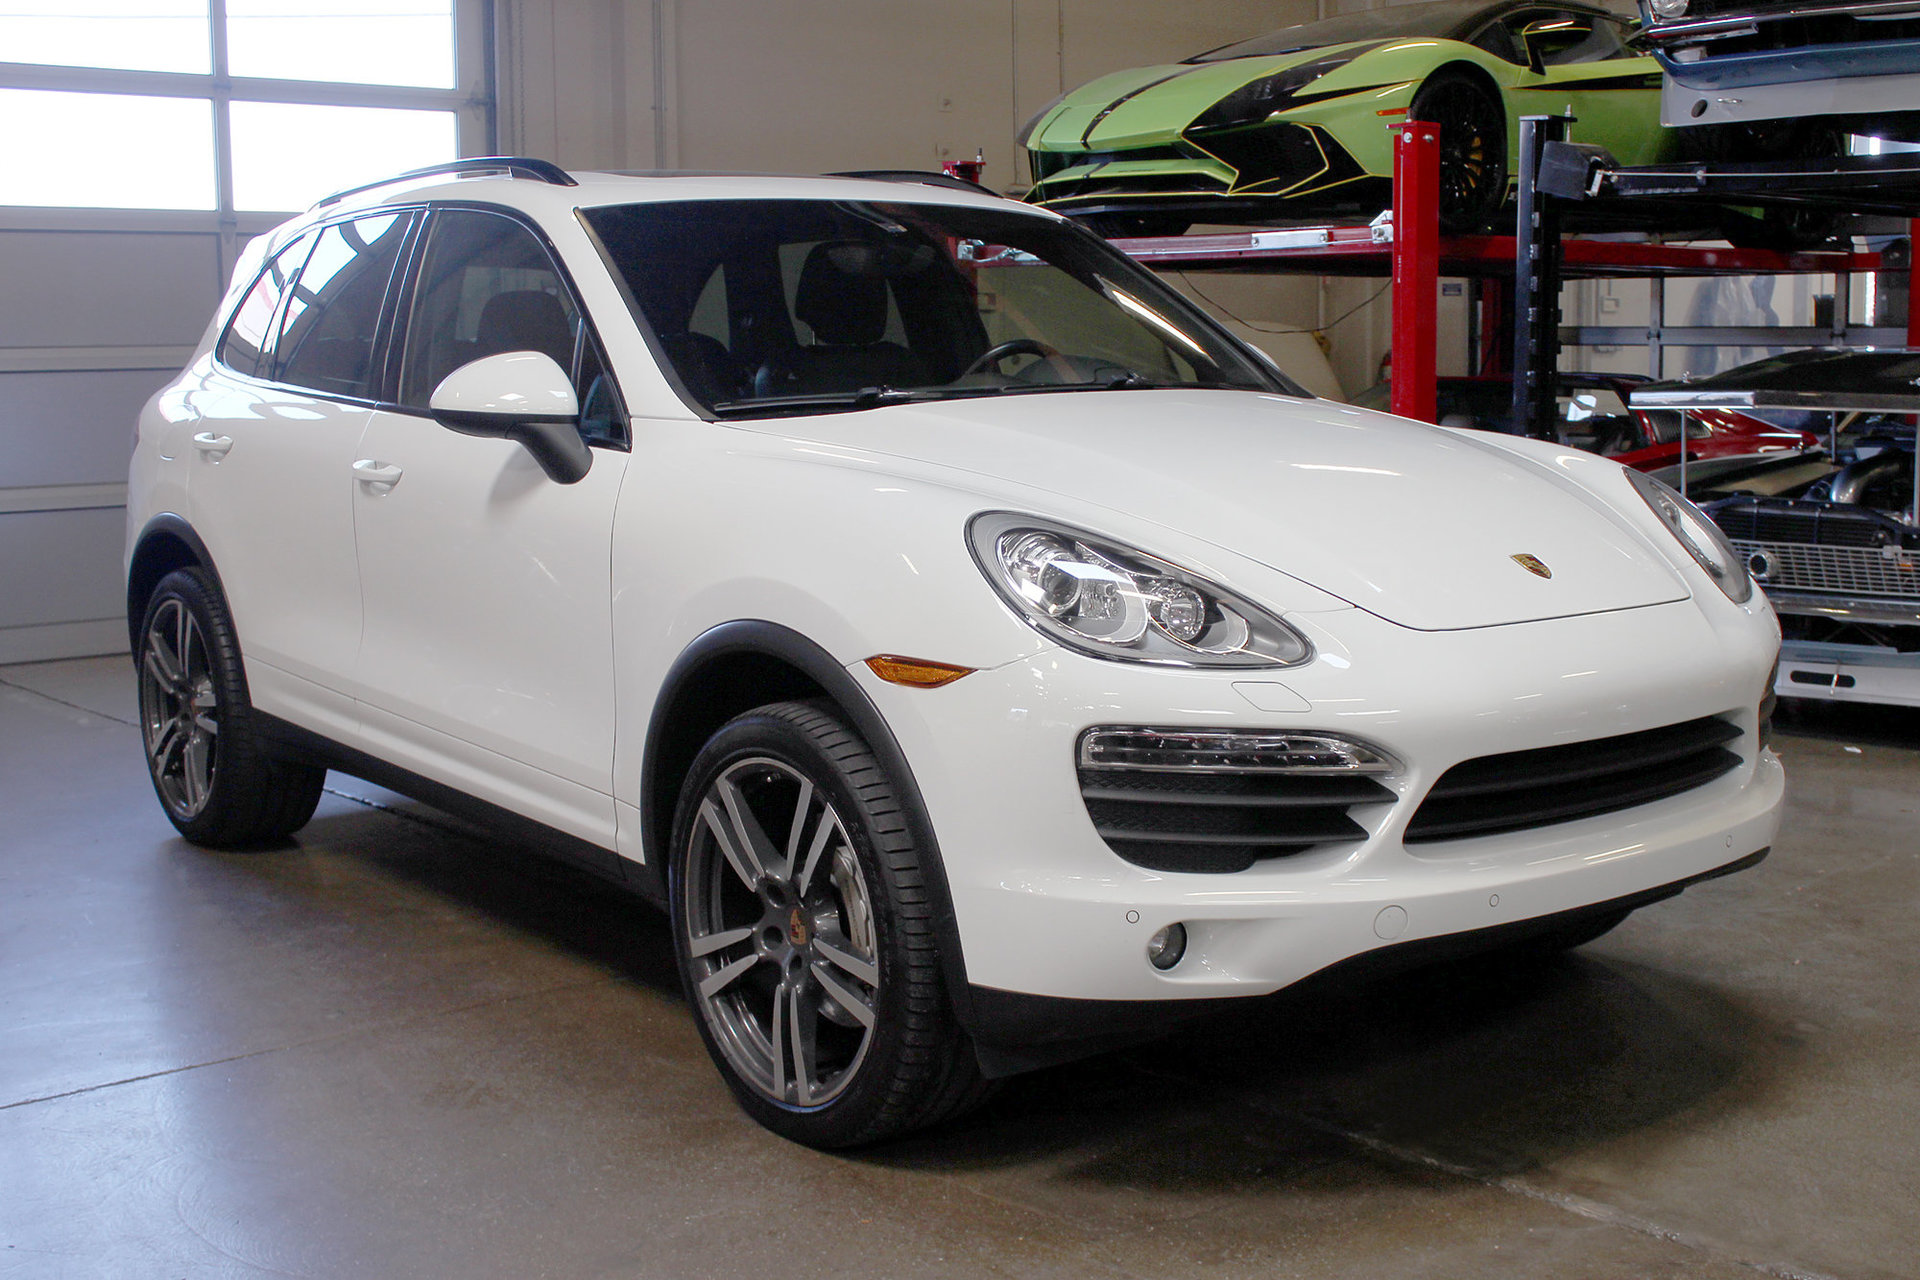 2013 porsche cayenne san francisco sports cars. Black Bedroom Furniture Sets. Home Design Ideas